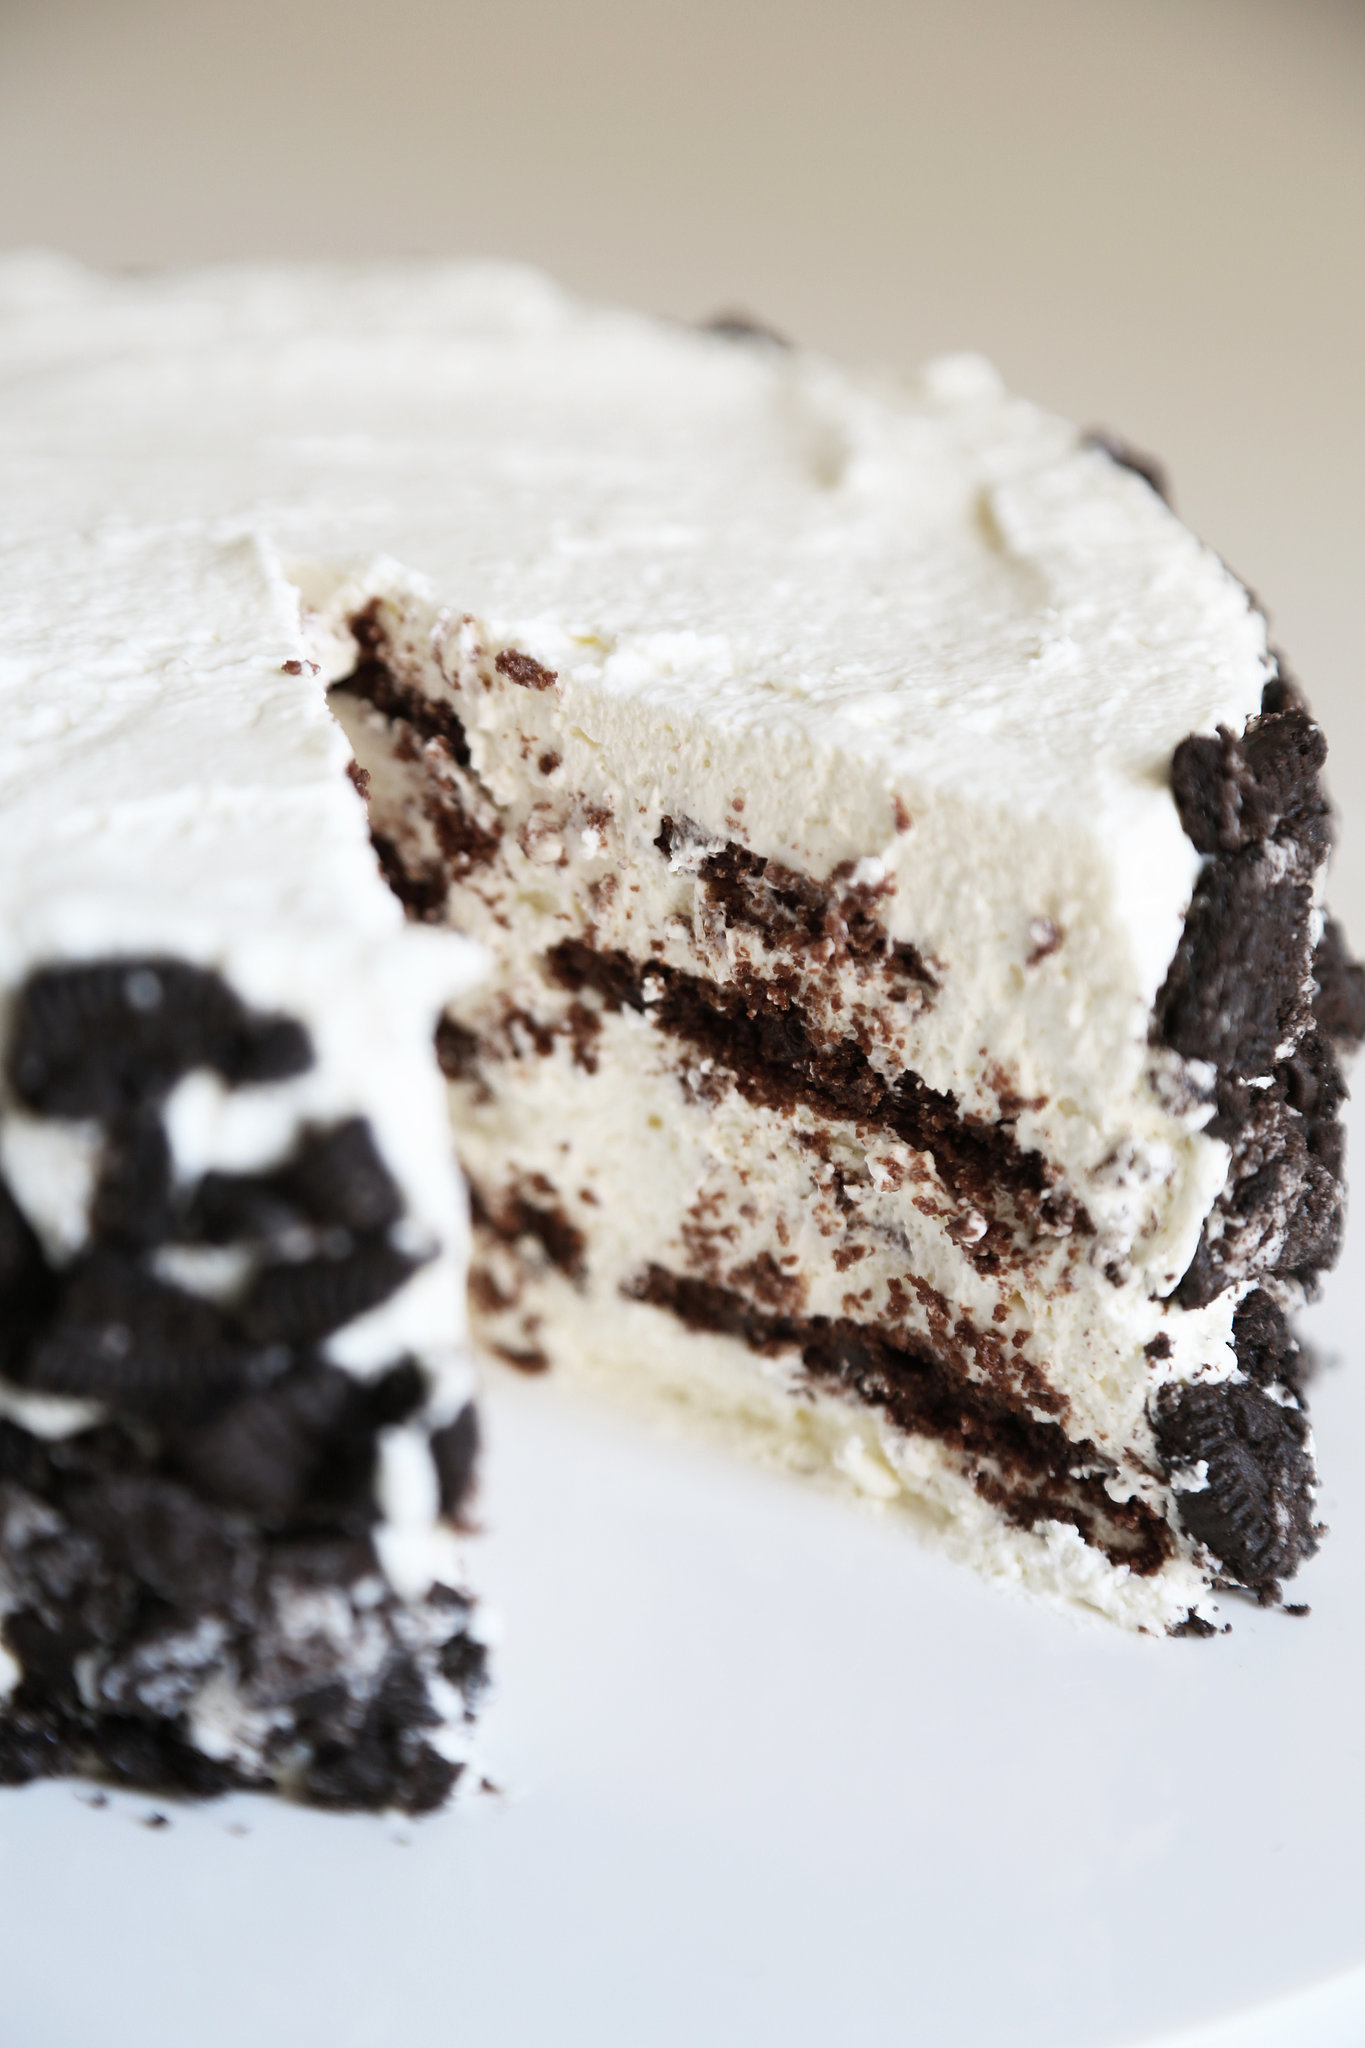 Icebox Cake Recipe | POPSUGAR Food